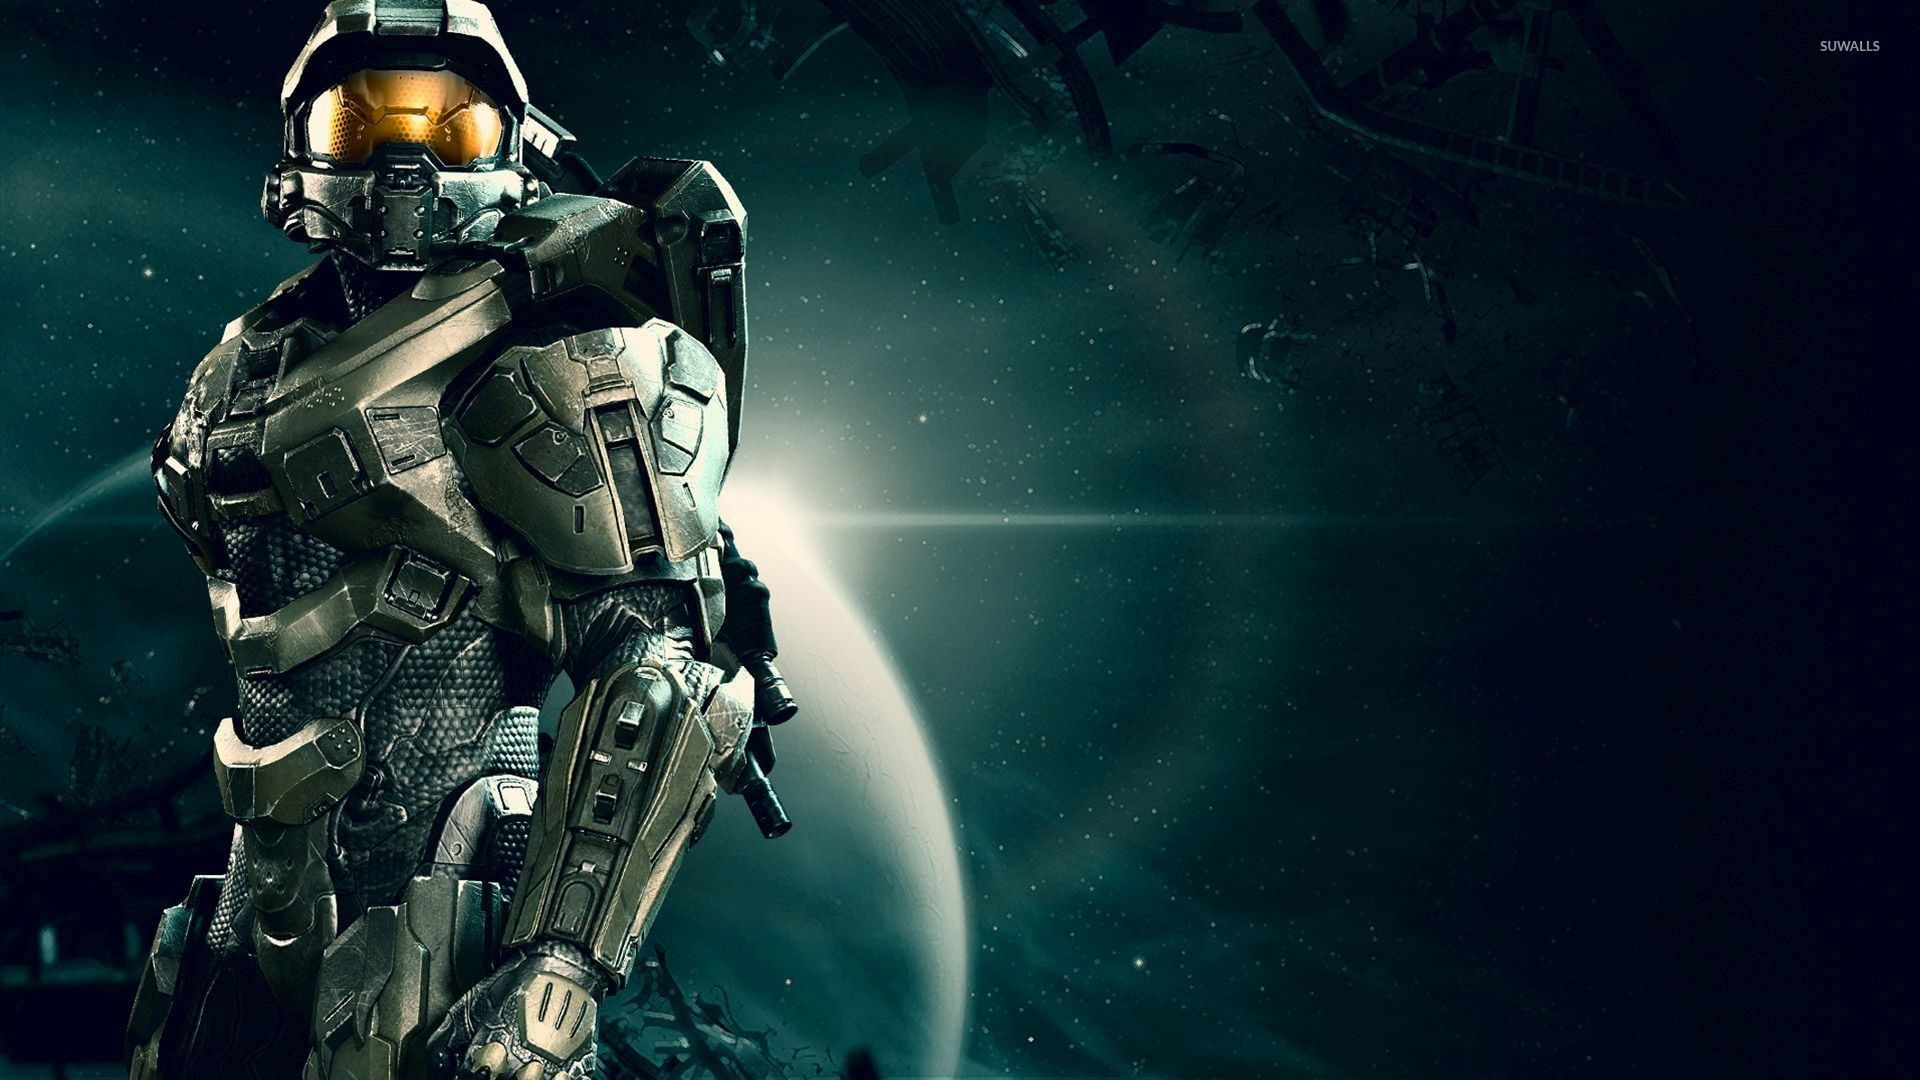 Halo The Master Chief Collection Wallpaper 1920x1080 Halo 5